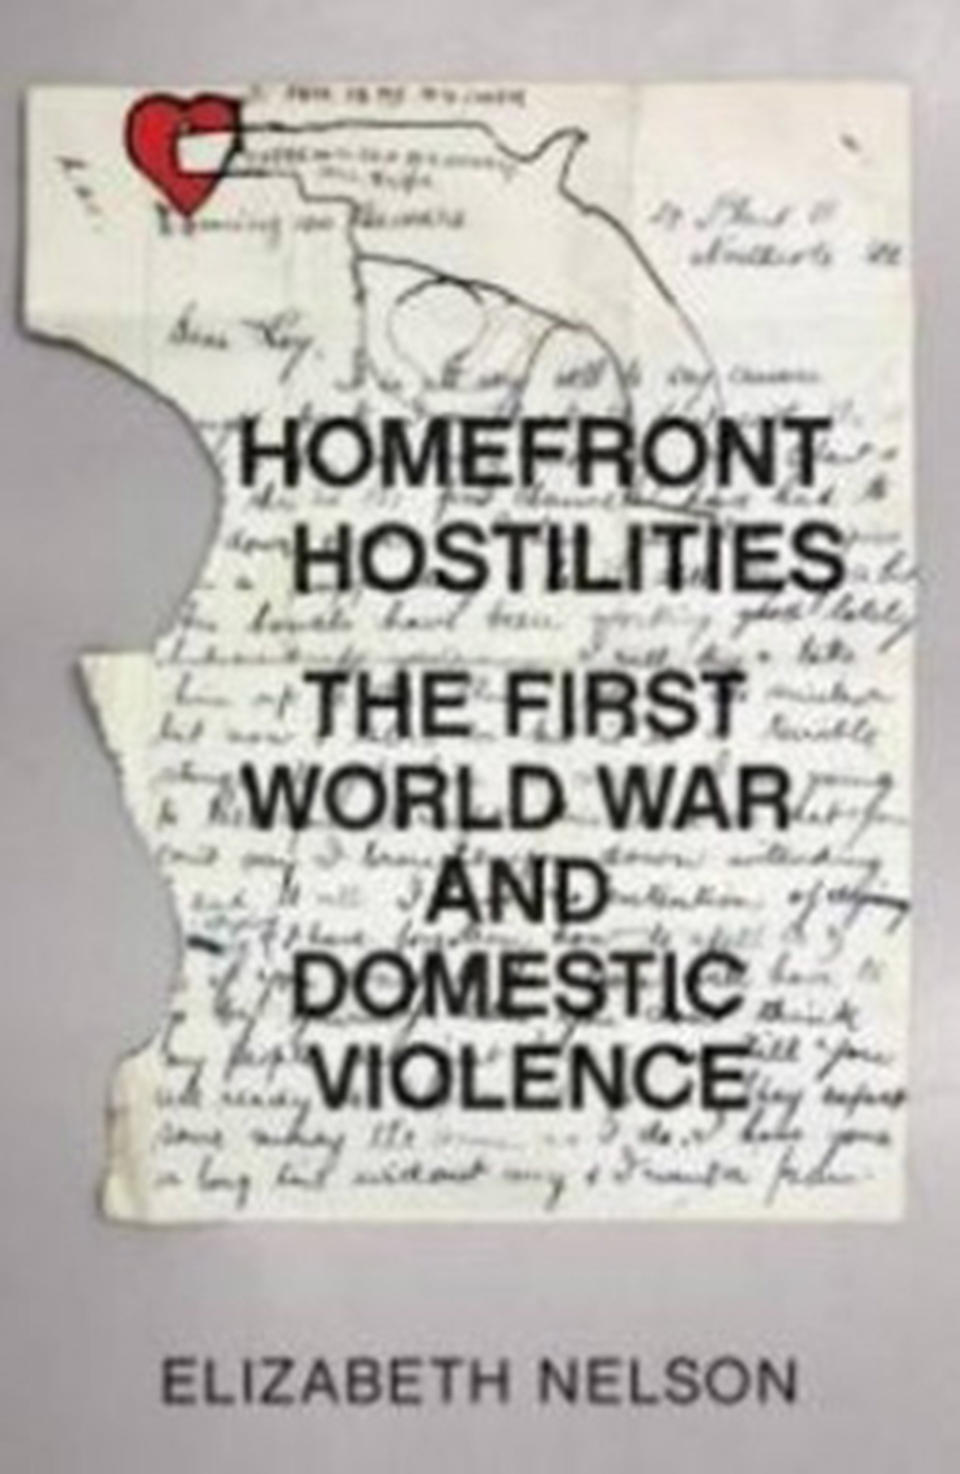 Homefront hostilities by ELizabeth Nelson